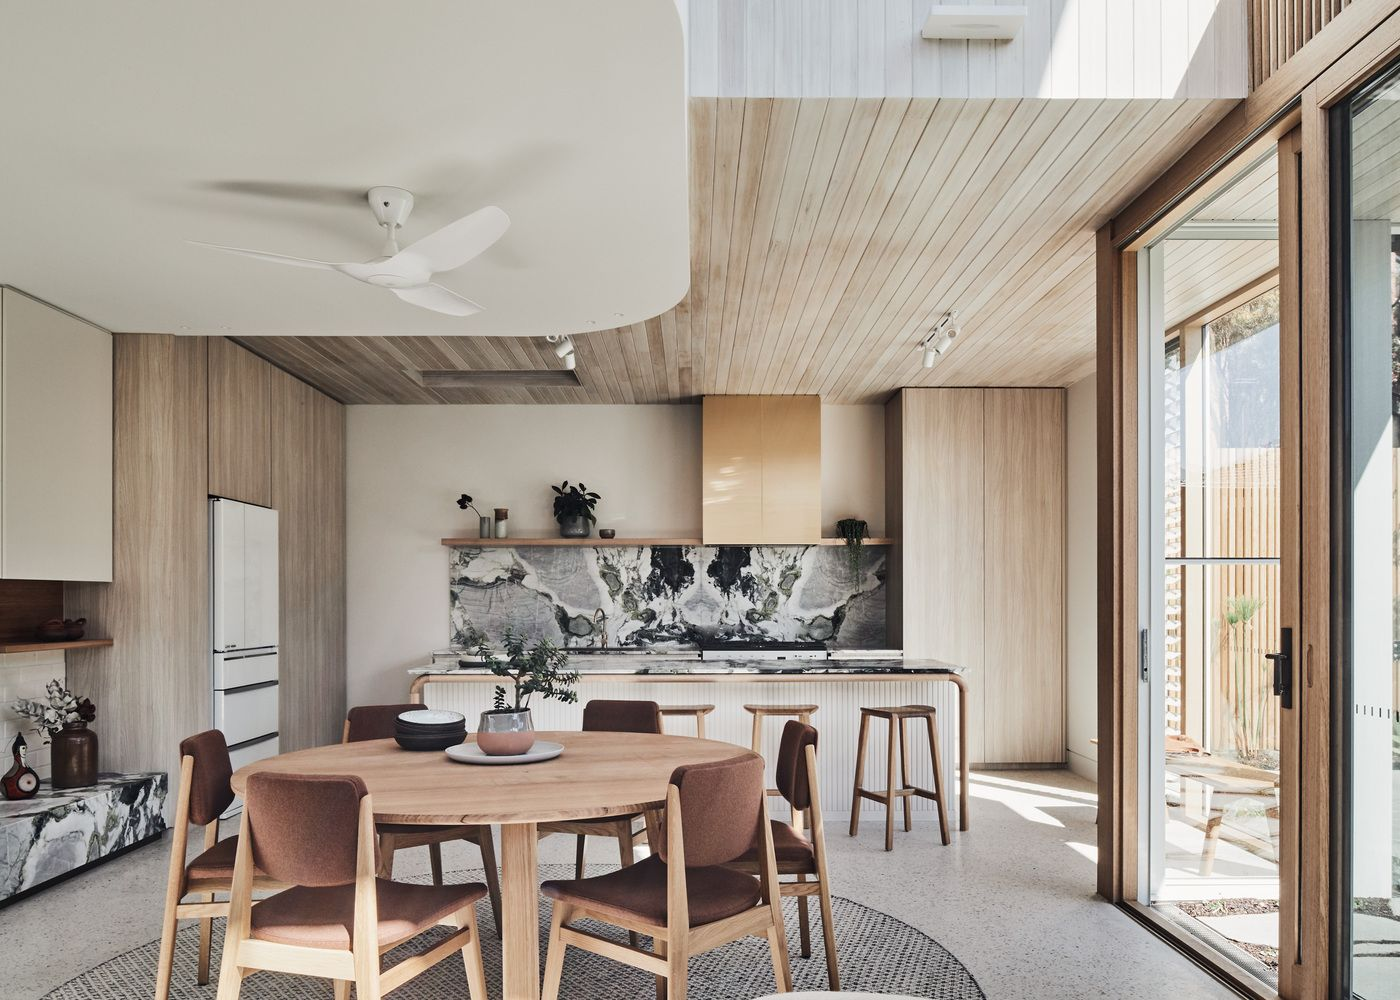 Gallery Of Lantern House Timmins Whyte Architects 13 In 2020 House Extension Design House Melbourne House